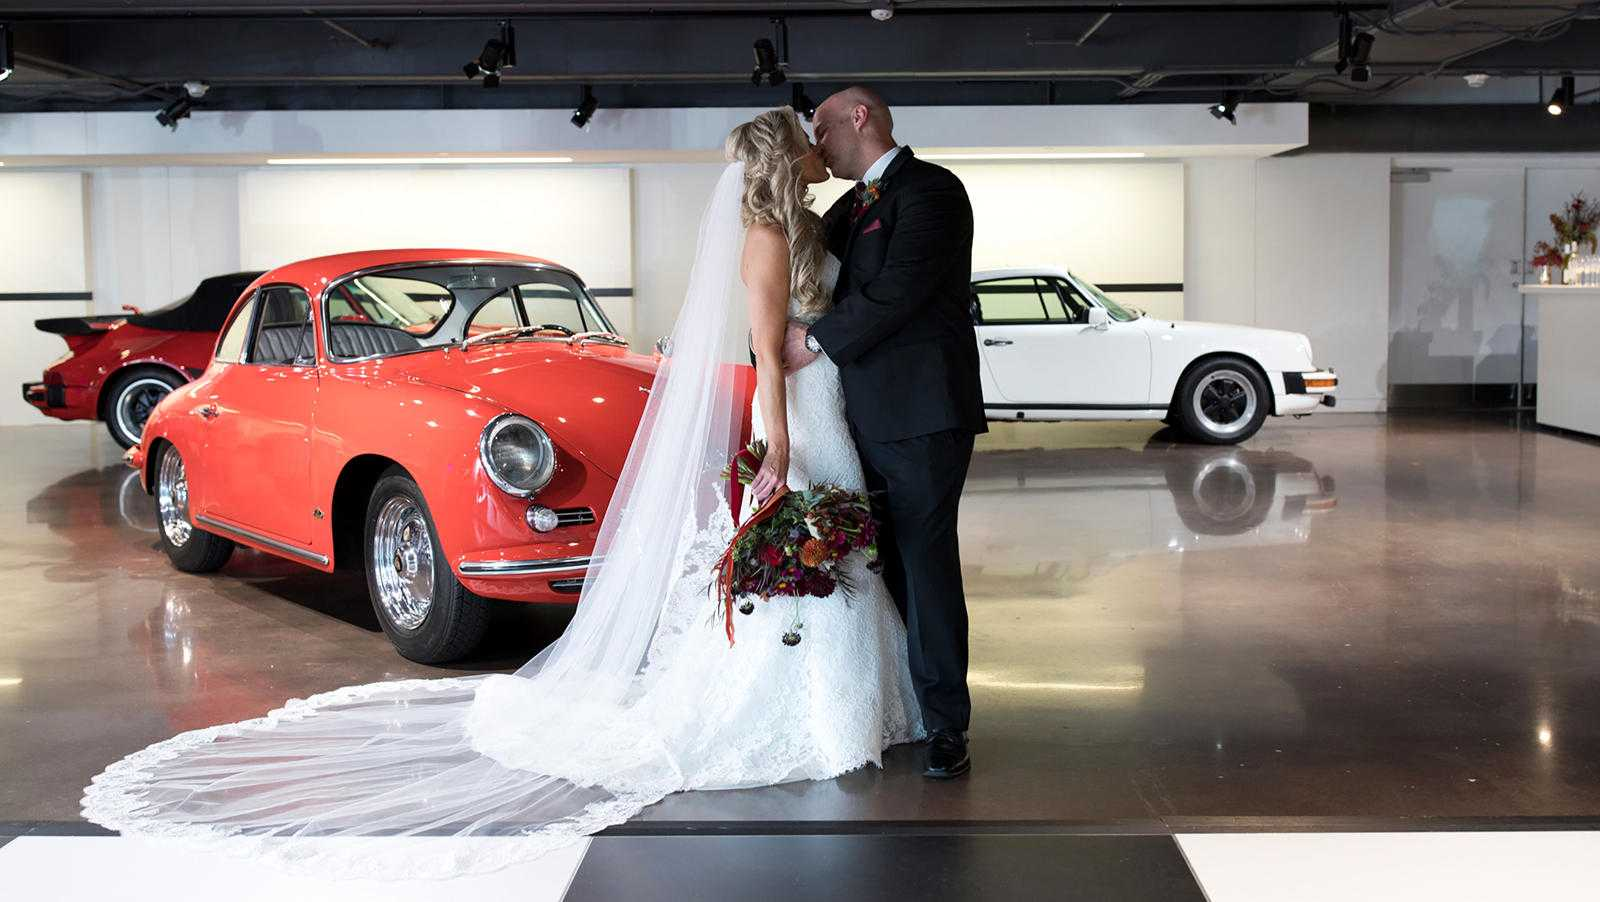 Couple Get Married At 70 MPH In Back Of A Porsche